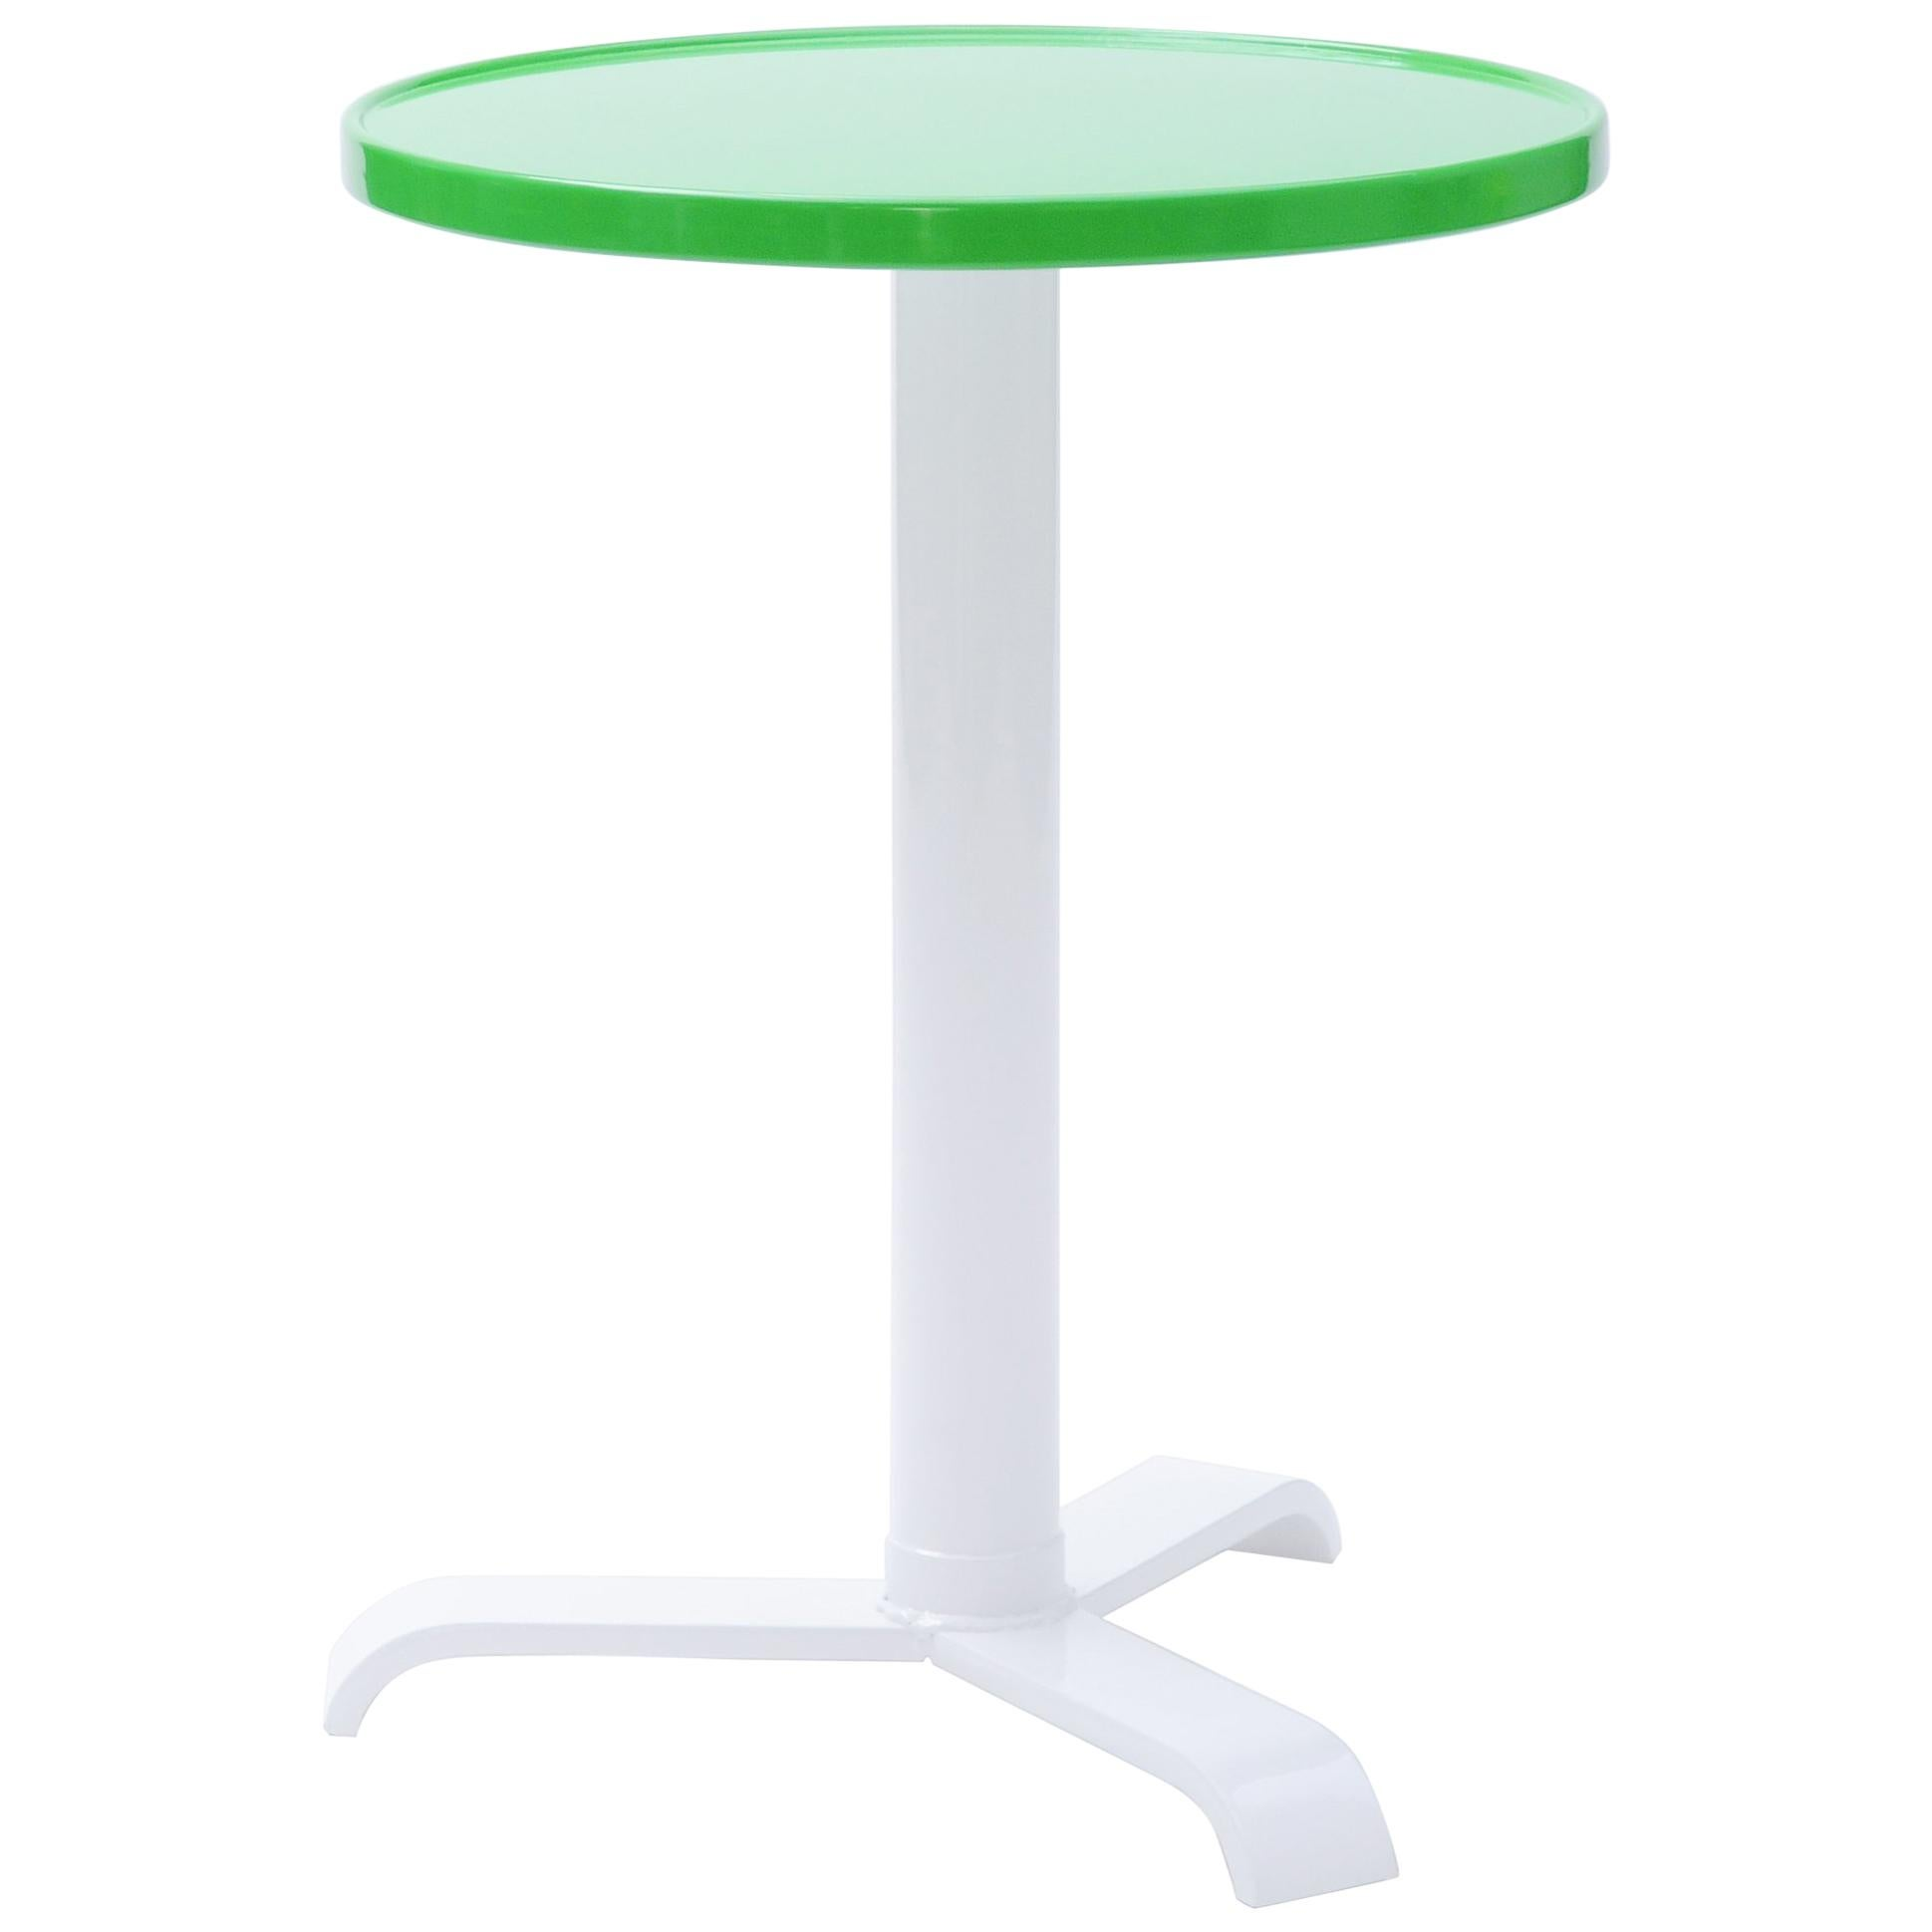 Gueridon 77 Small Round Pedestal Table in Essential Colors by Tolix